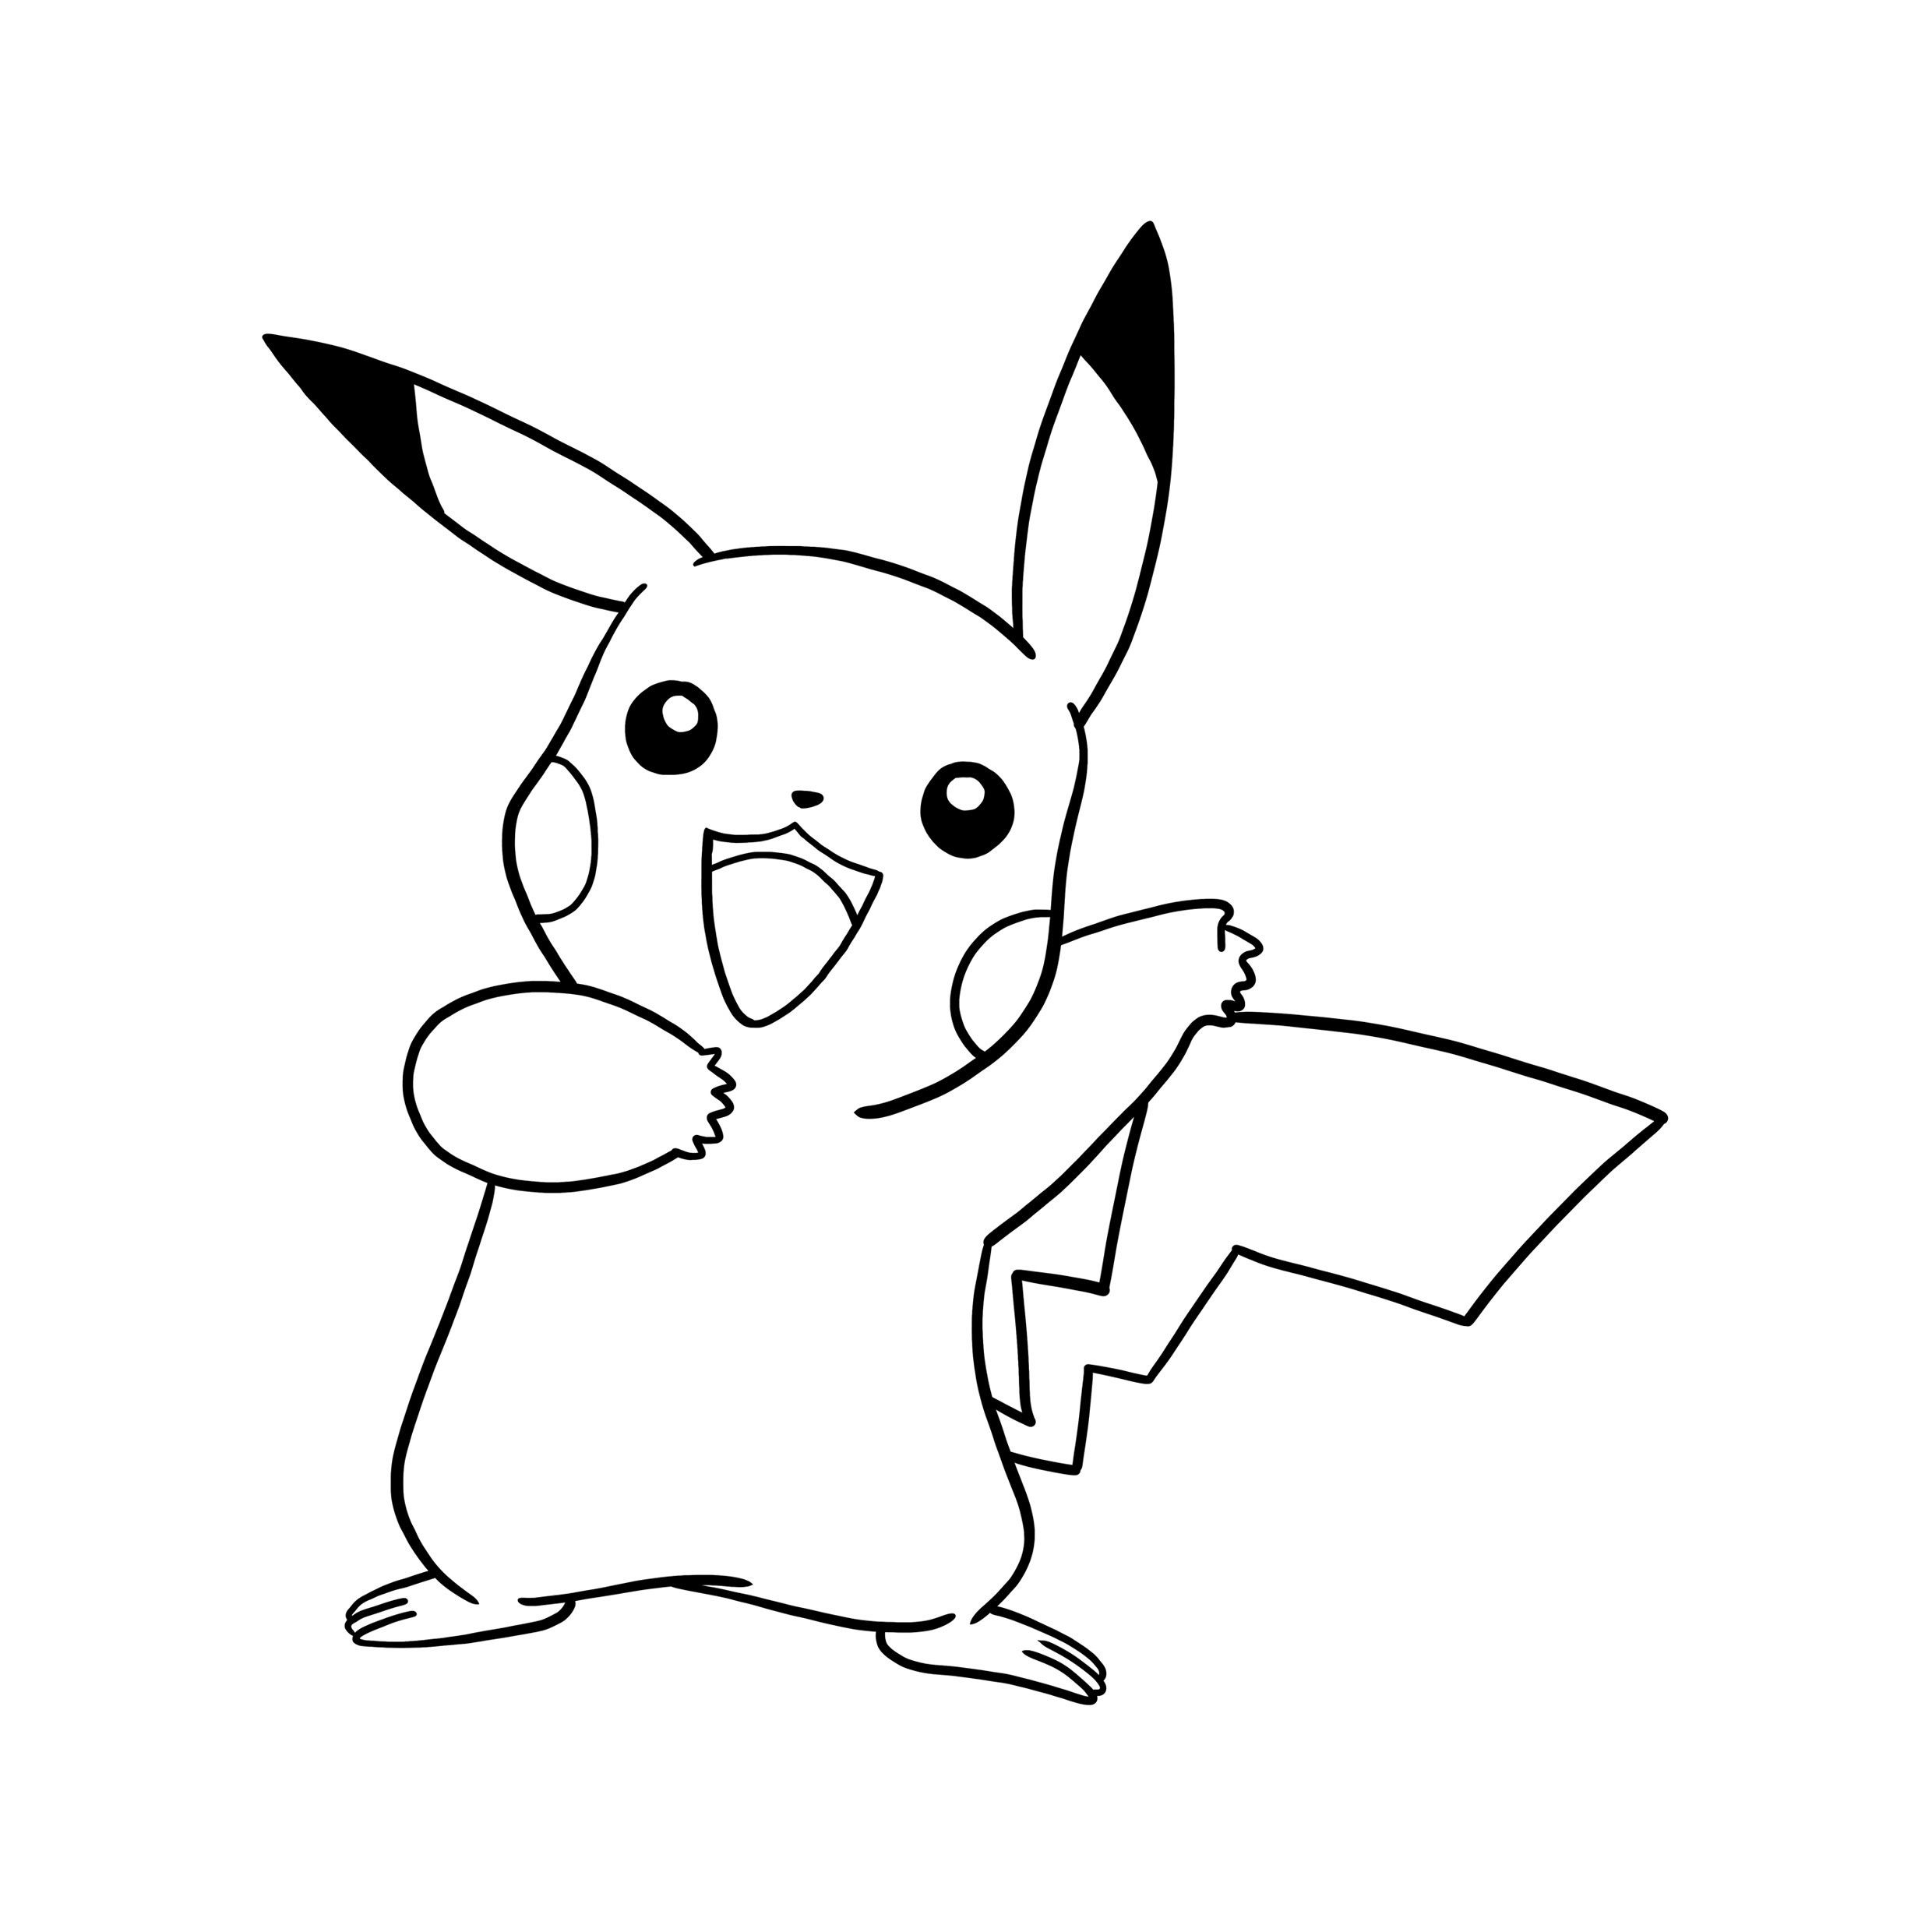 Pikachu Drawings New Easy Pikachu Drawing How To Draw Pikachu Using Paint Youtube Pikachu Drawing Pikachu Coloring Page Pokemon Drawings